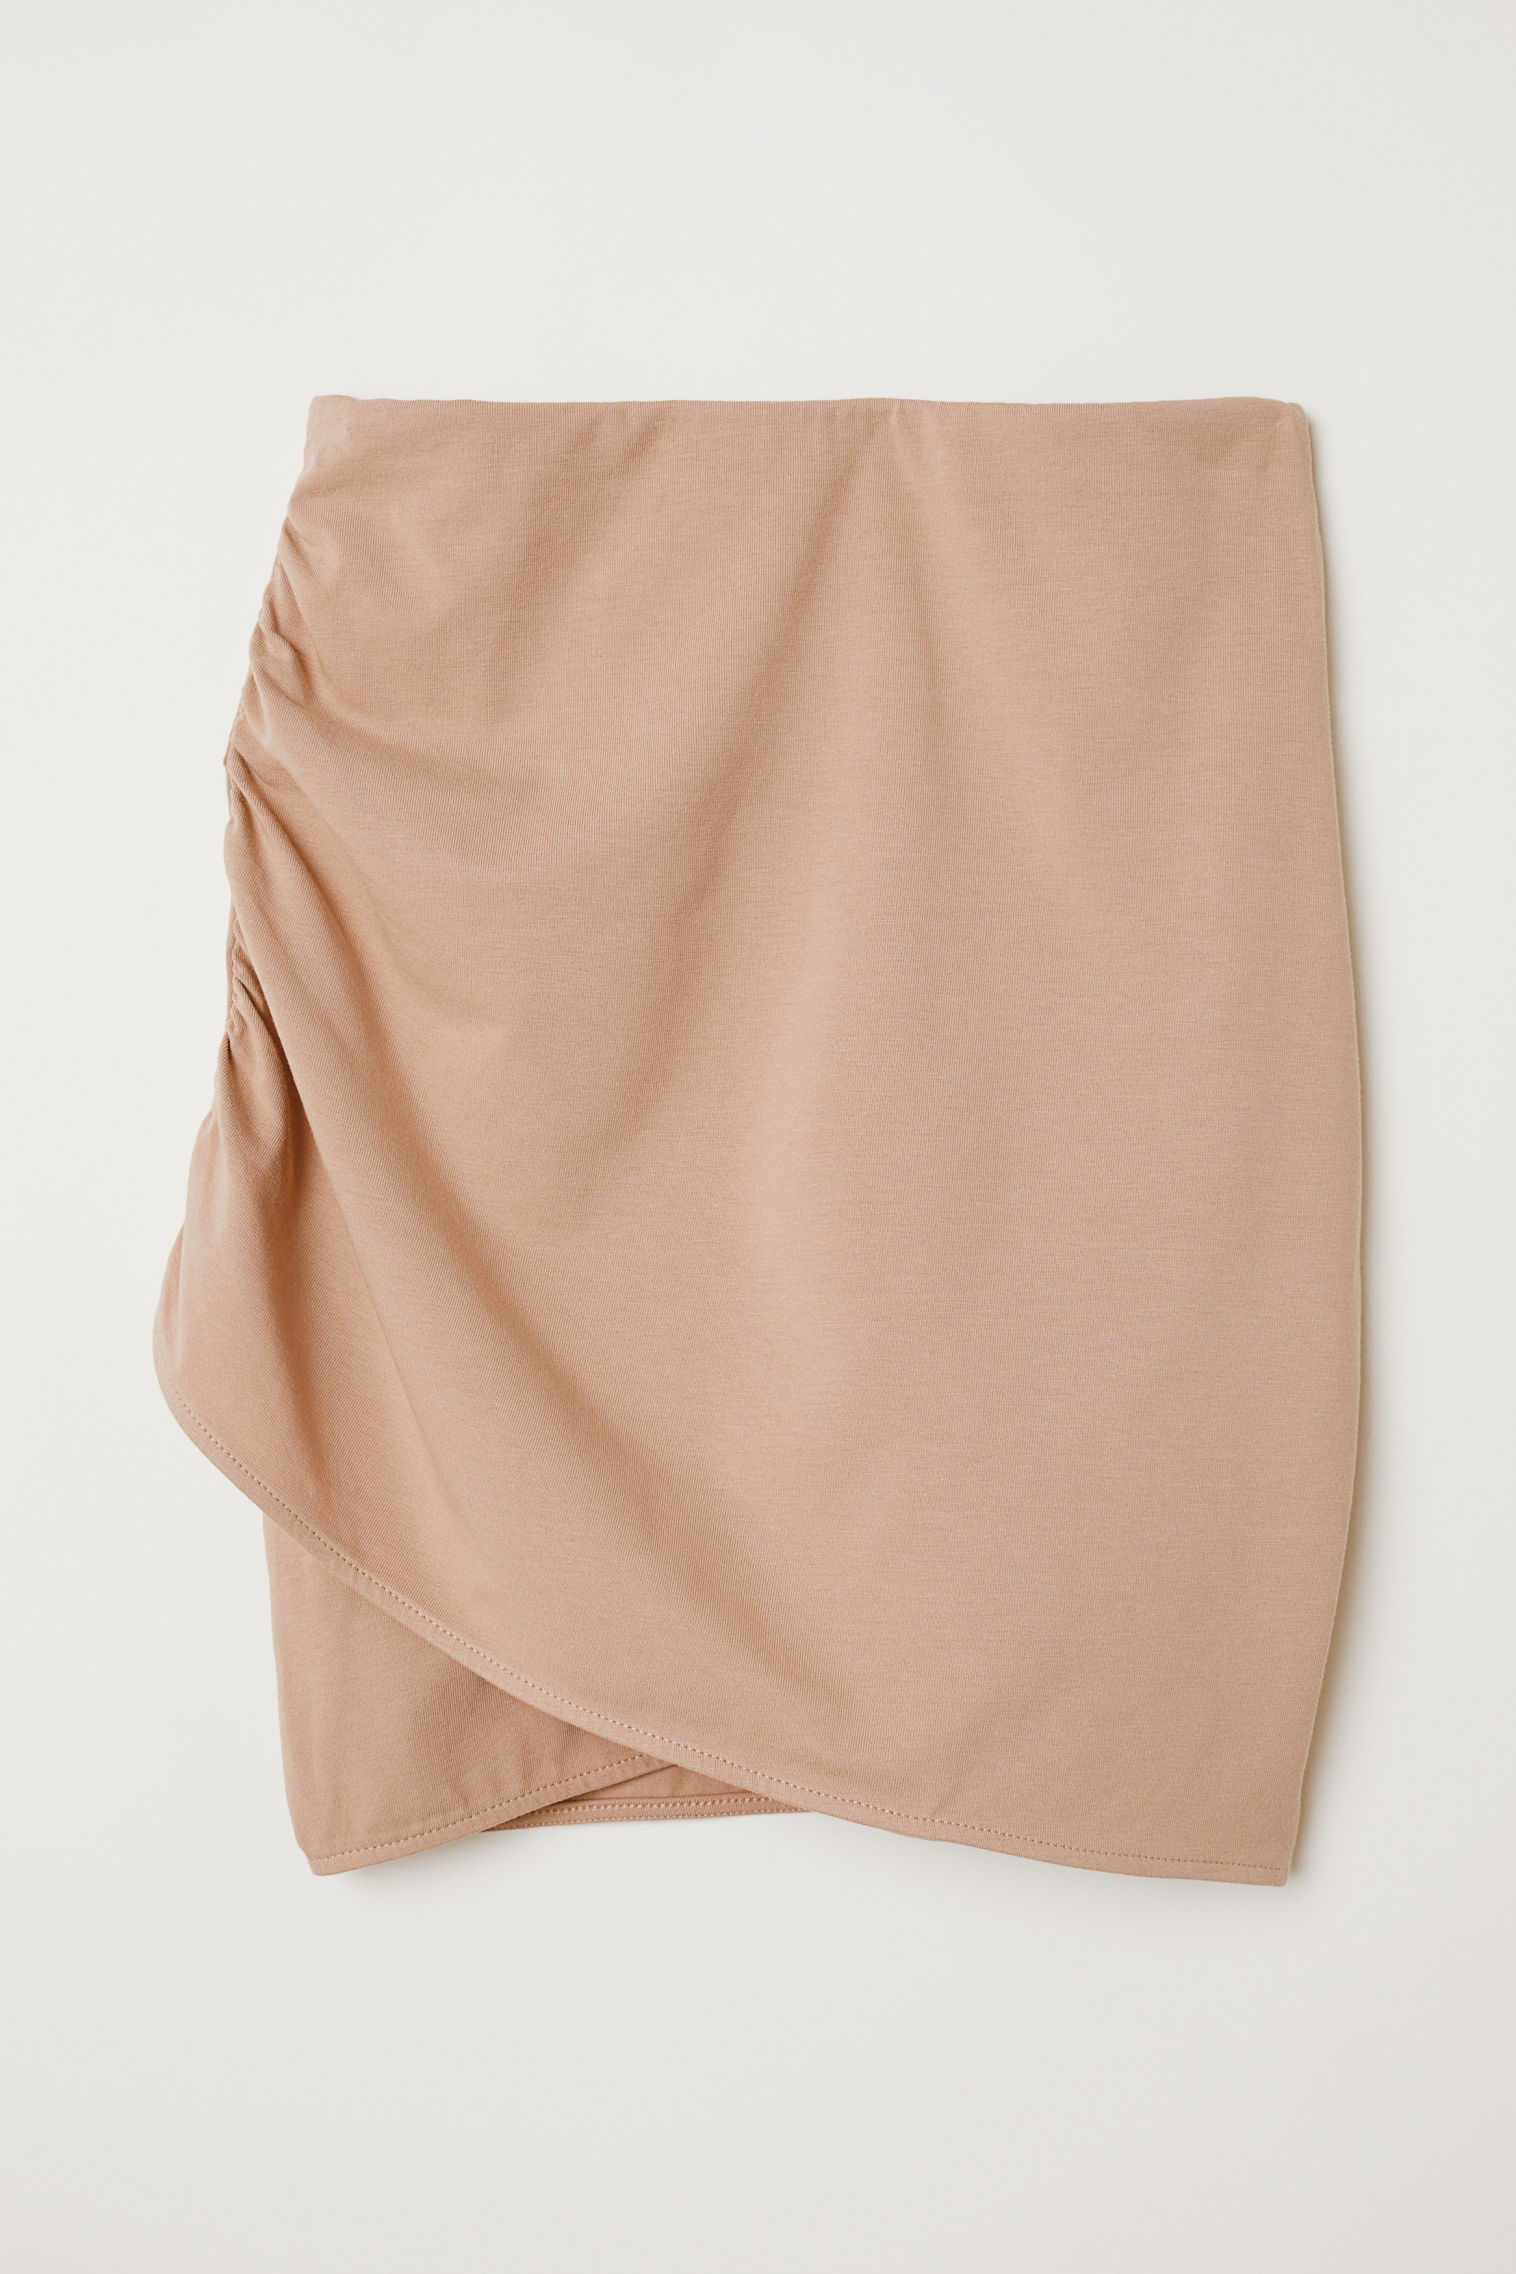 img love draped be ruched asymmetrical skirt maroon drapes wrap black to or products